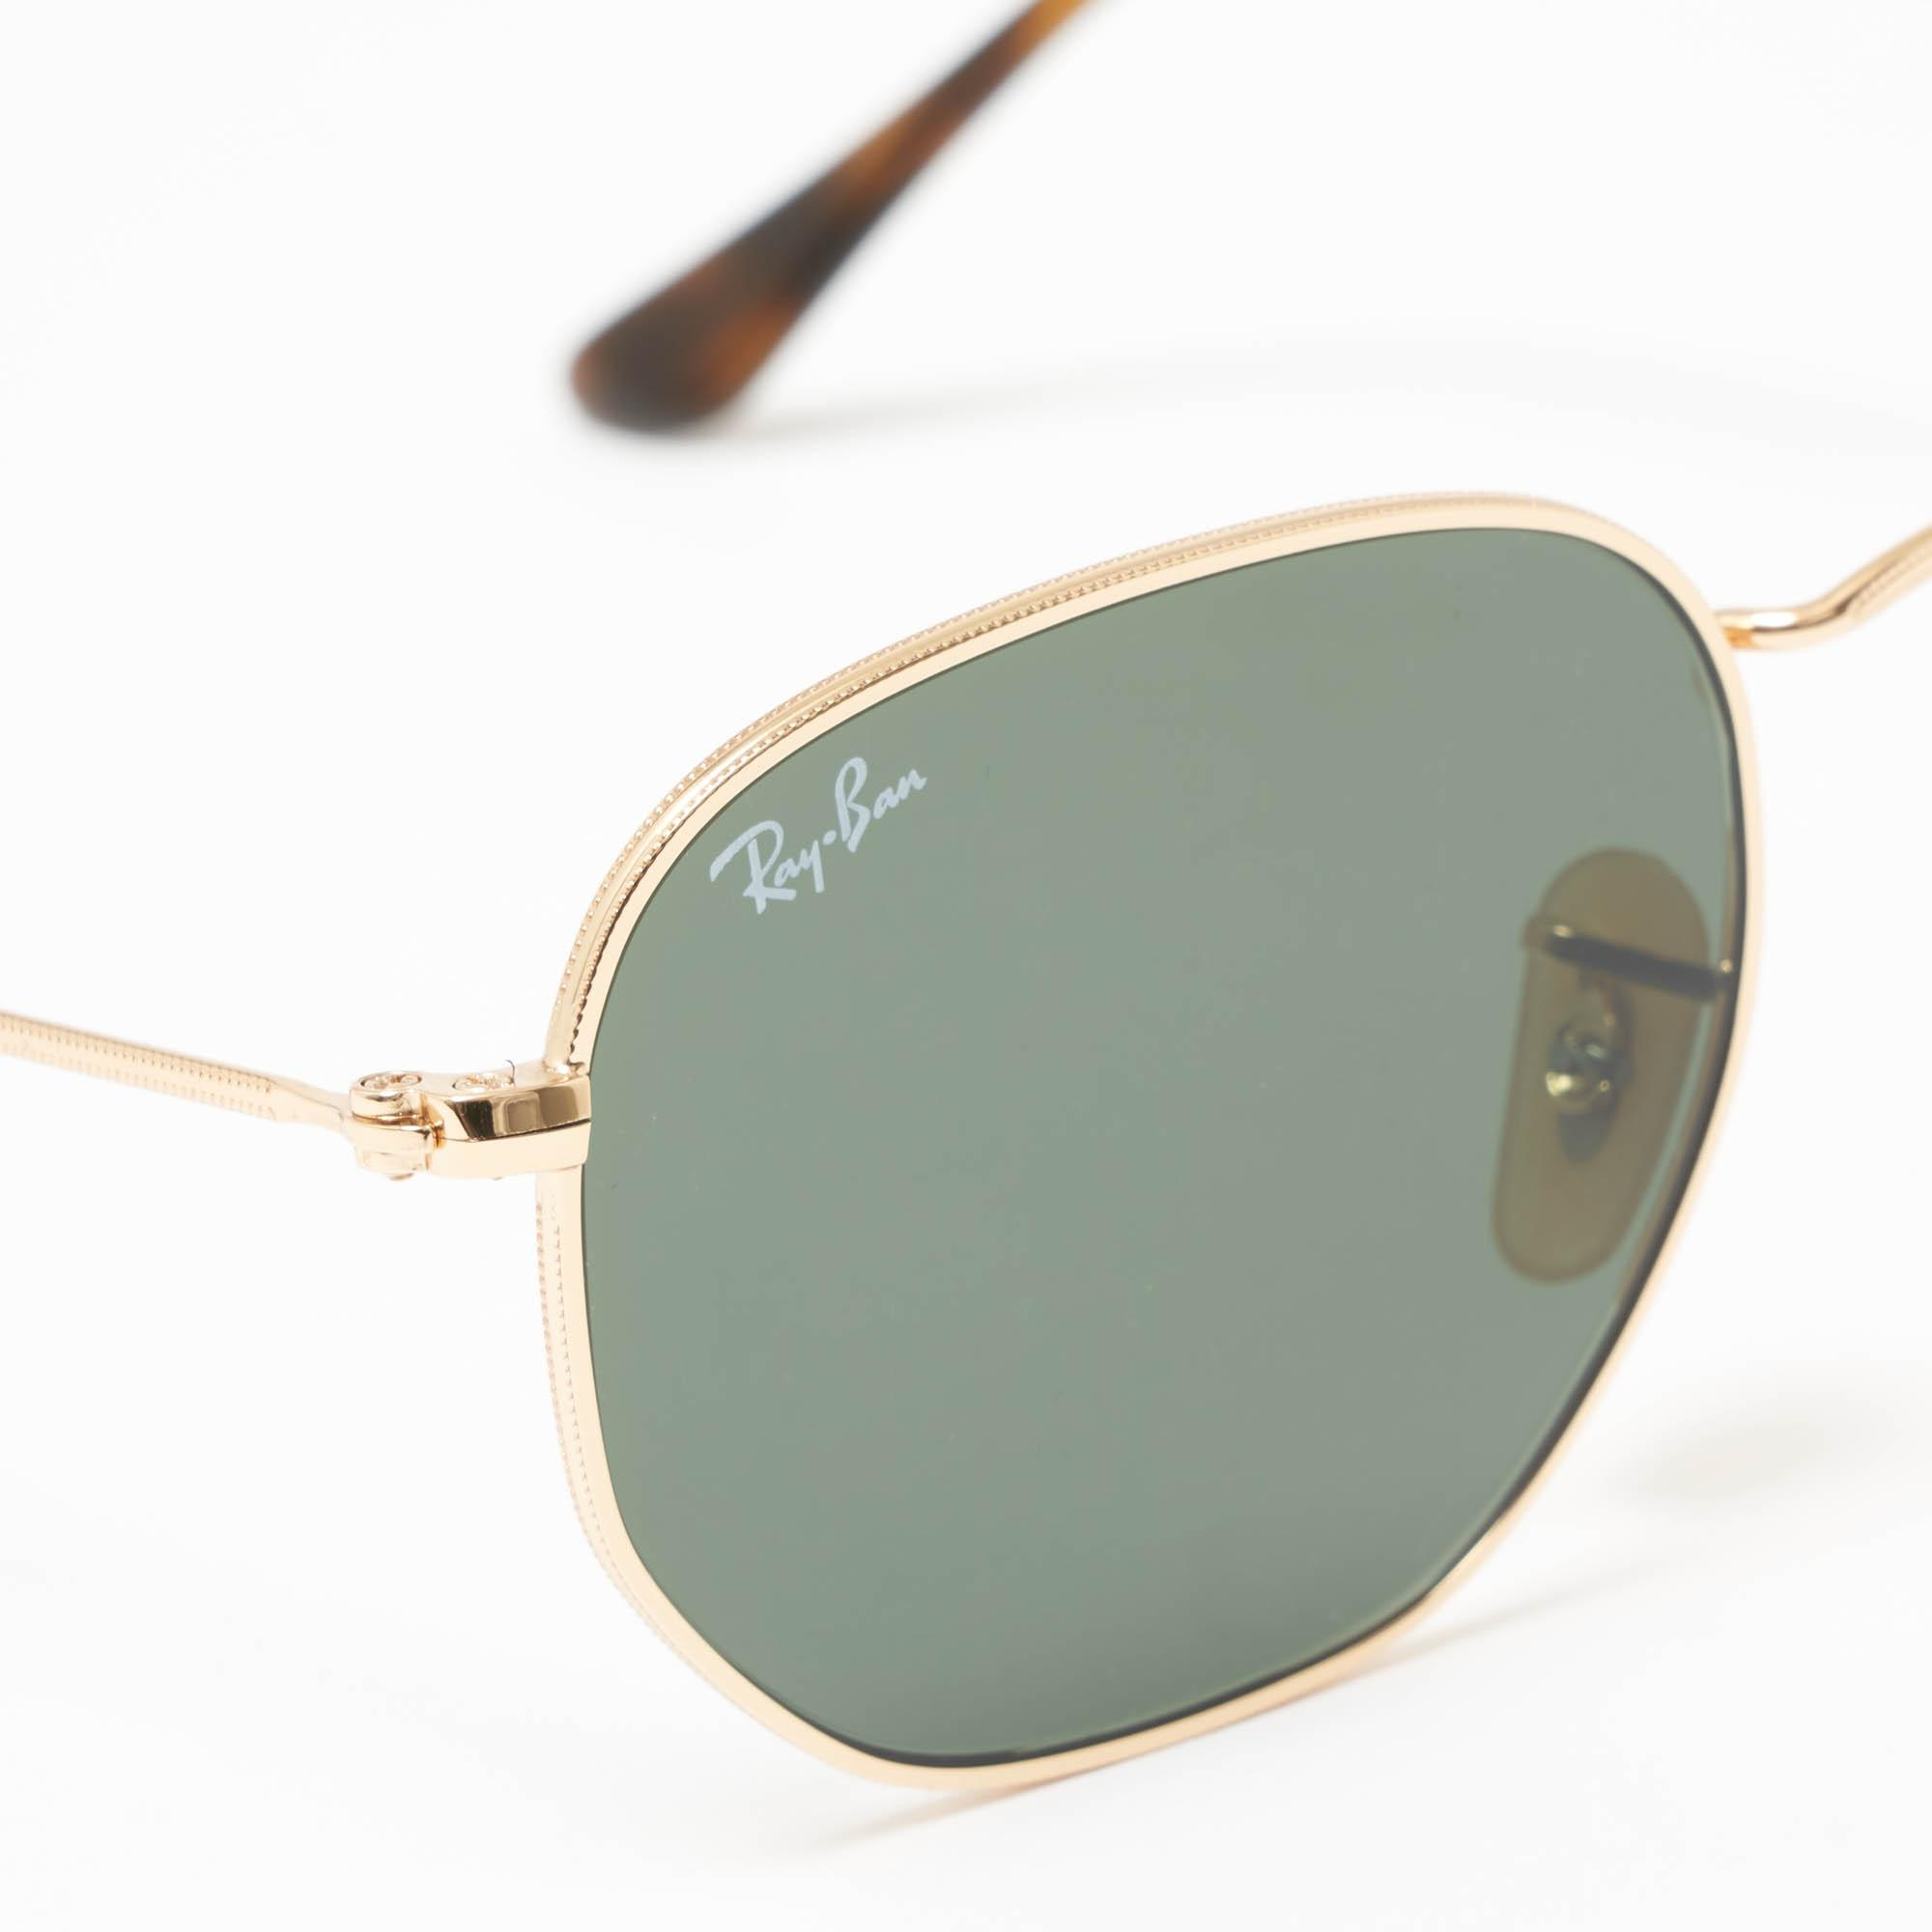 bc0be1d495 Ray-Ban - Hexagonal Flat Lens Sunglasses - Green Classic G-15 Lenses for.  View fullscreen